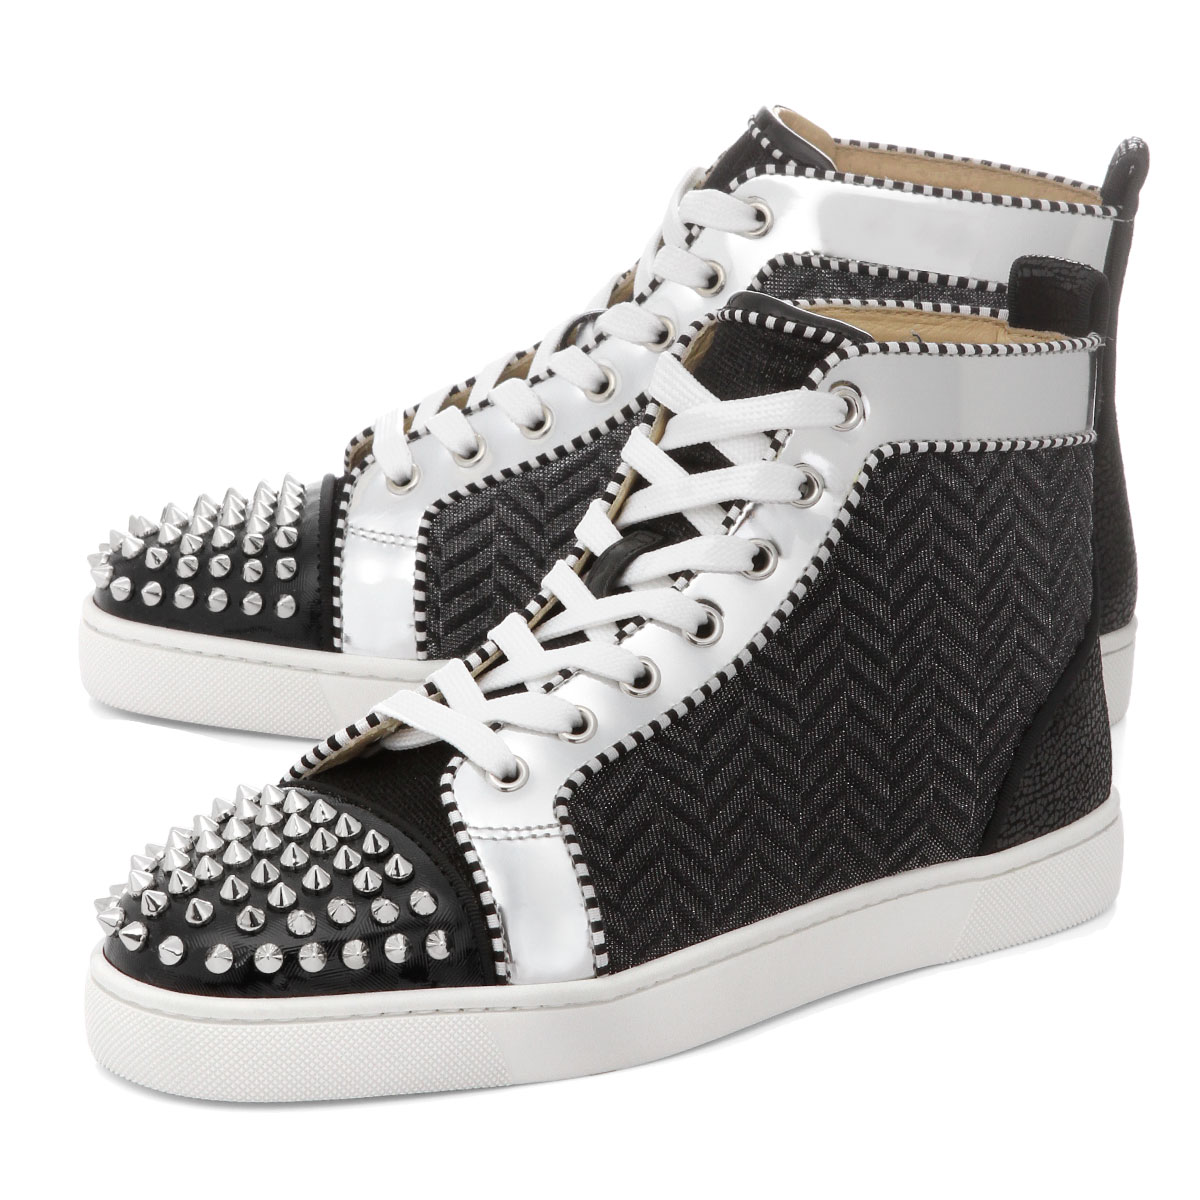 separation shoes 66b03 52268 1190400 クリスチャンルブタン Christian Louboutin shoes men BK65 sneakers higher  frequency elimination LOU SPIKES ORLATO FLAT ルースパイクスオルラートフラット BLACK/SILVER  black